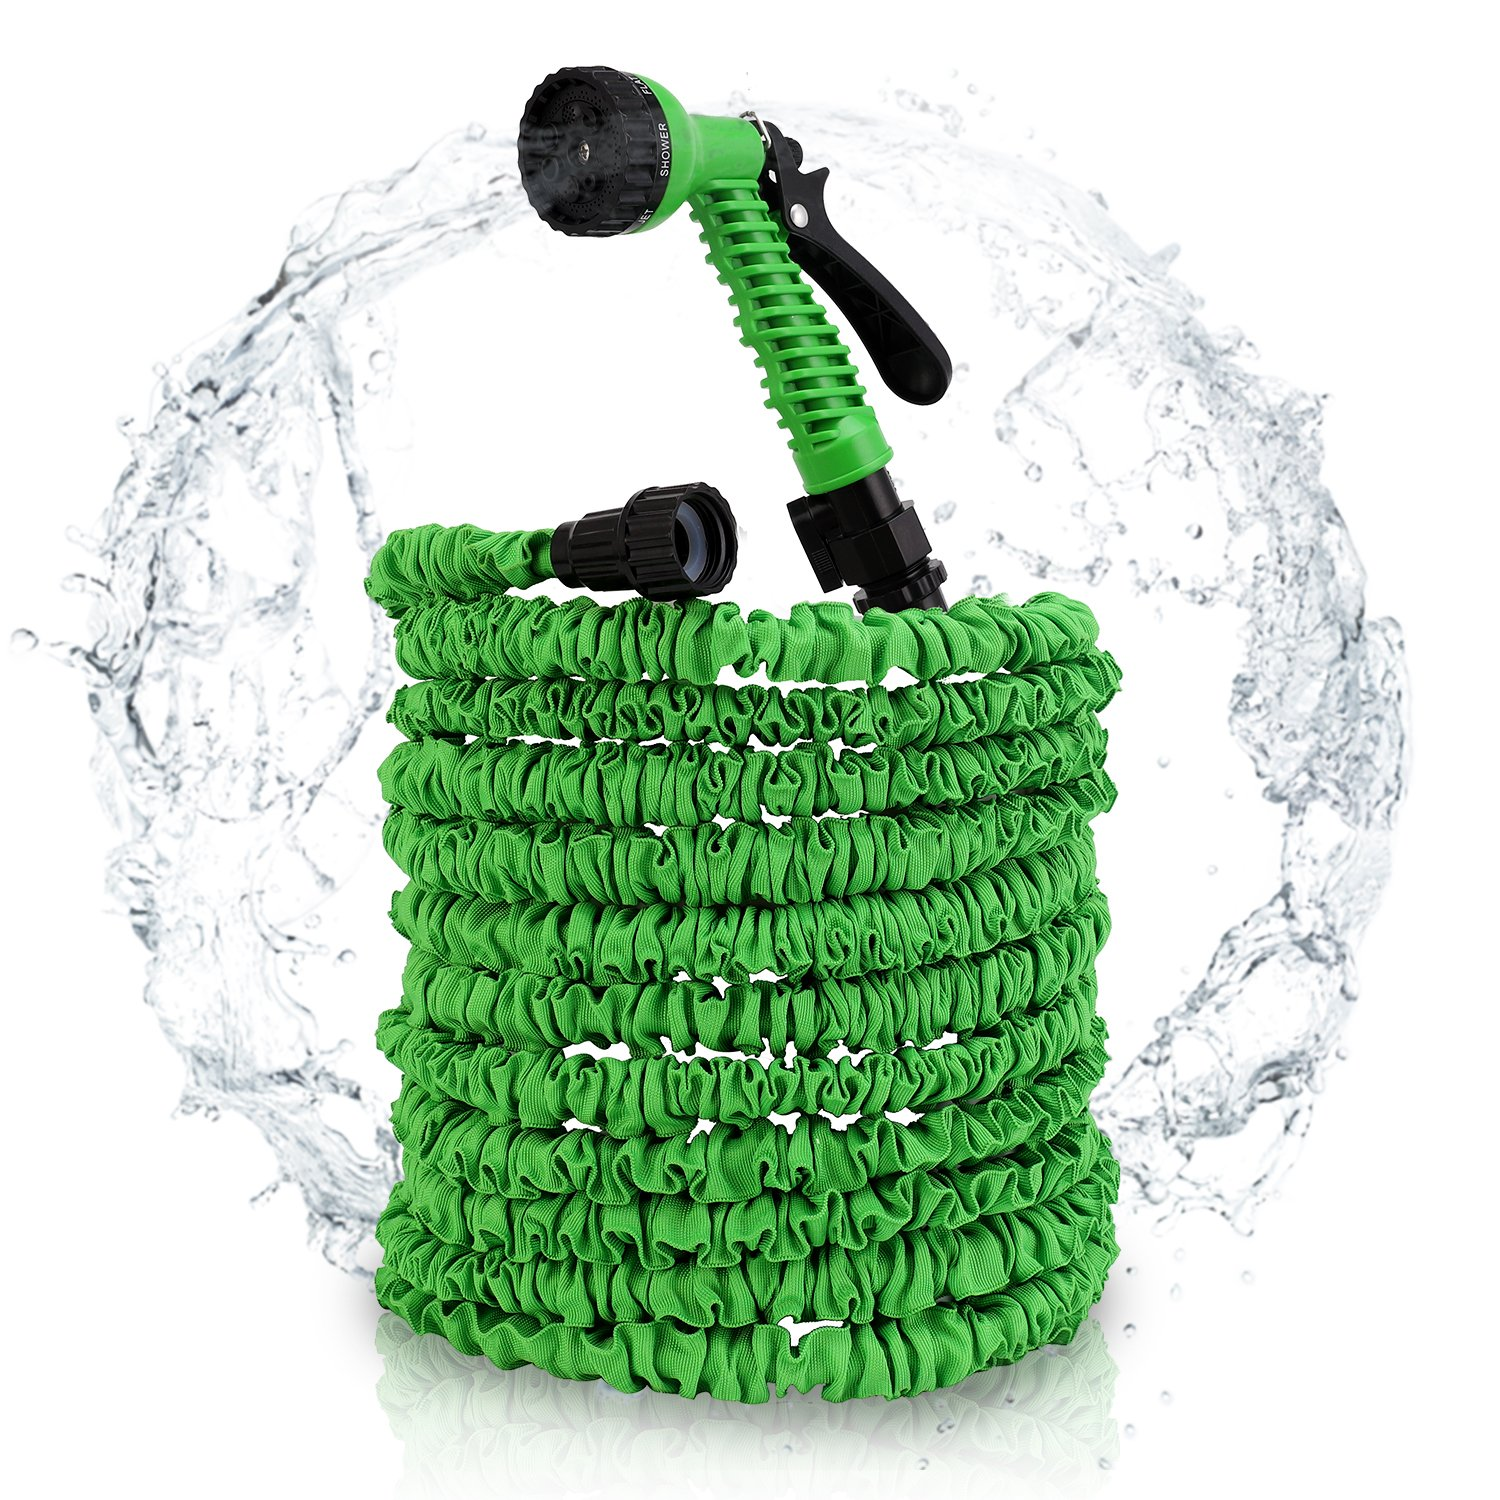 Veidoo Garden Hose,Expandable Hose,75 ft with 7 Pattern Spray Nozzle, High Pressure, Flexible for All Your Watering, Car Wash Use,shower pet (green)